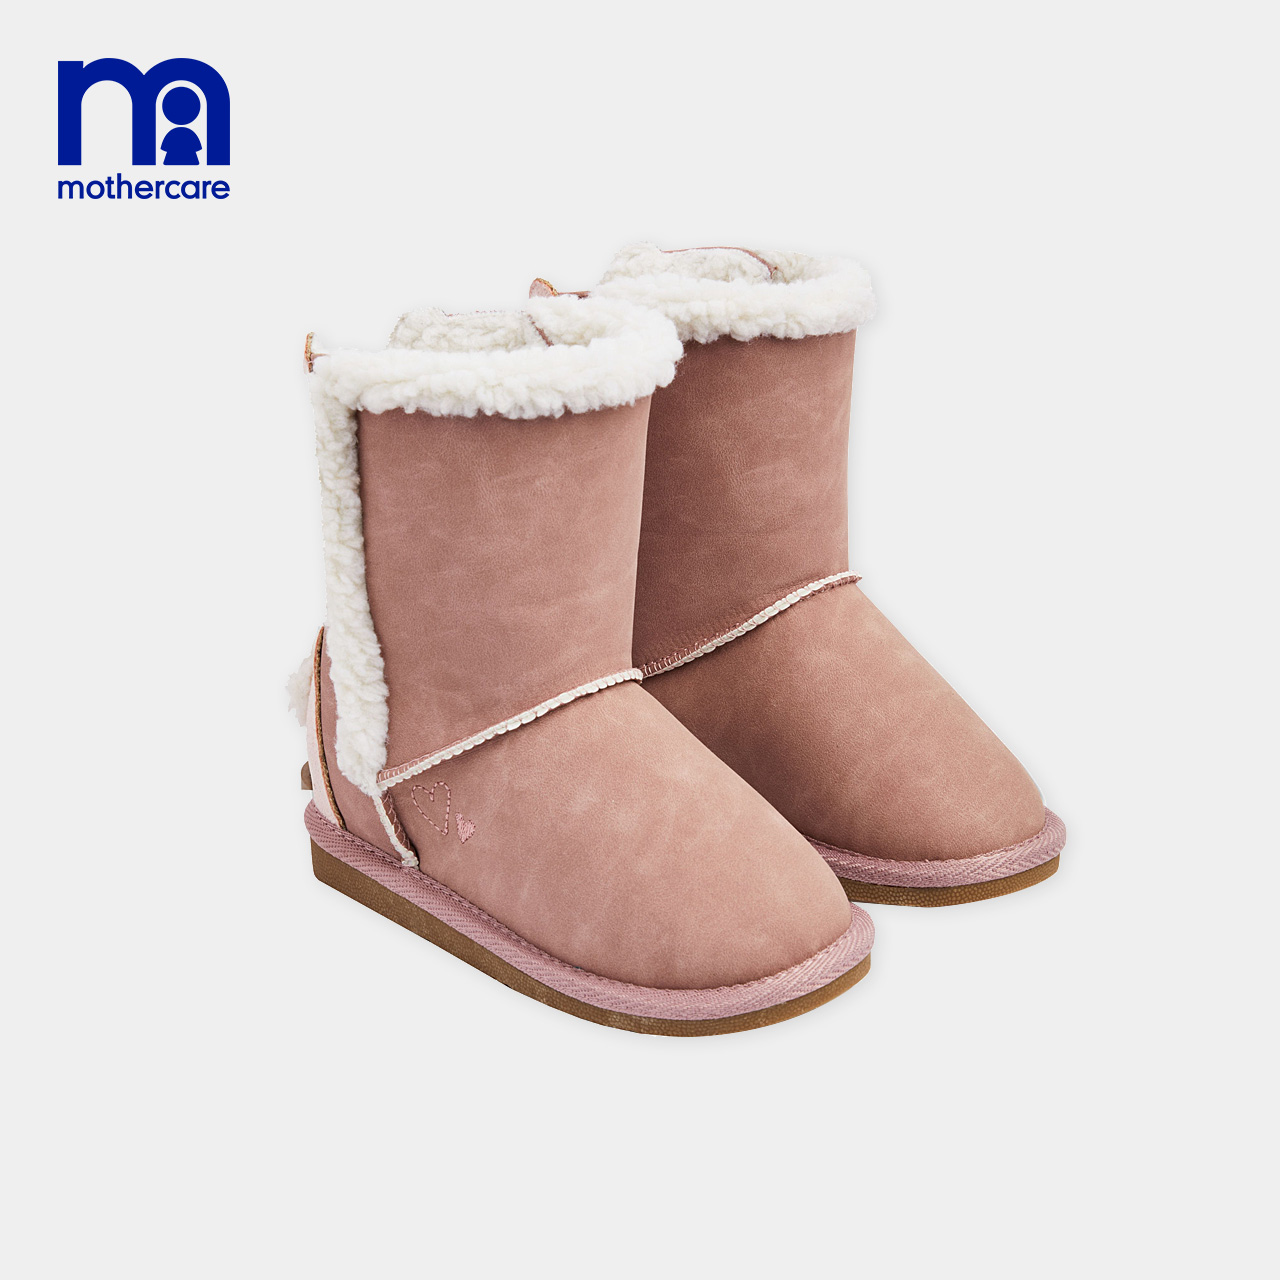 mothercare British children's shoes children's snow boots girl baby shoes girl boots winter 2-5 years old